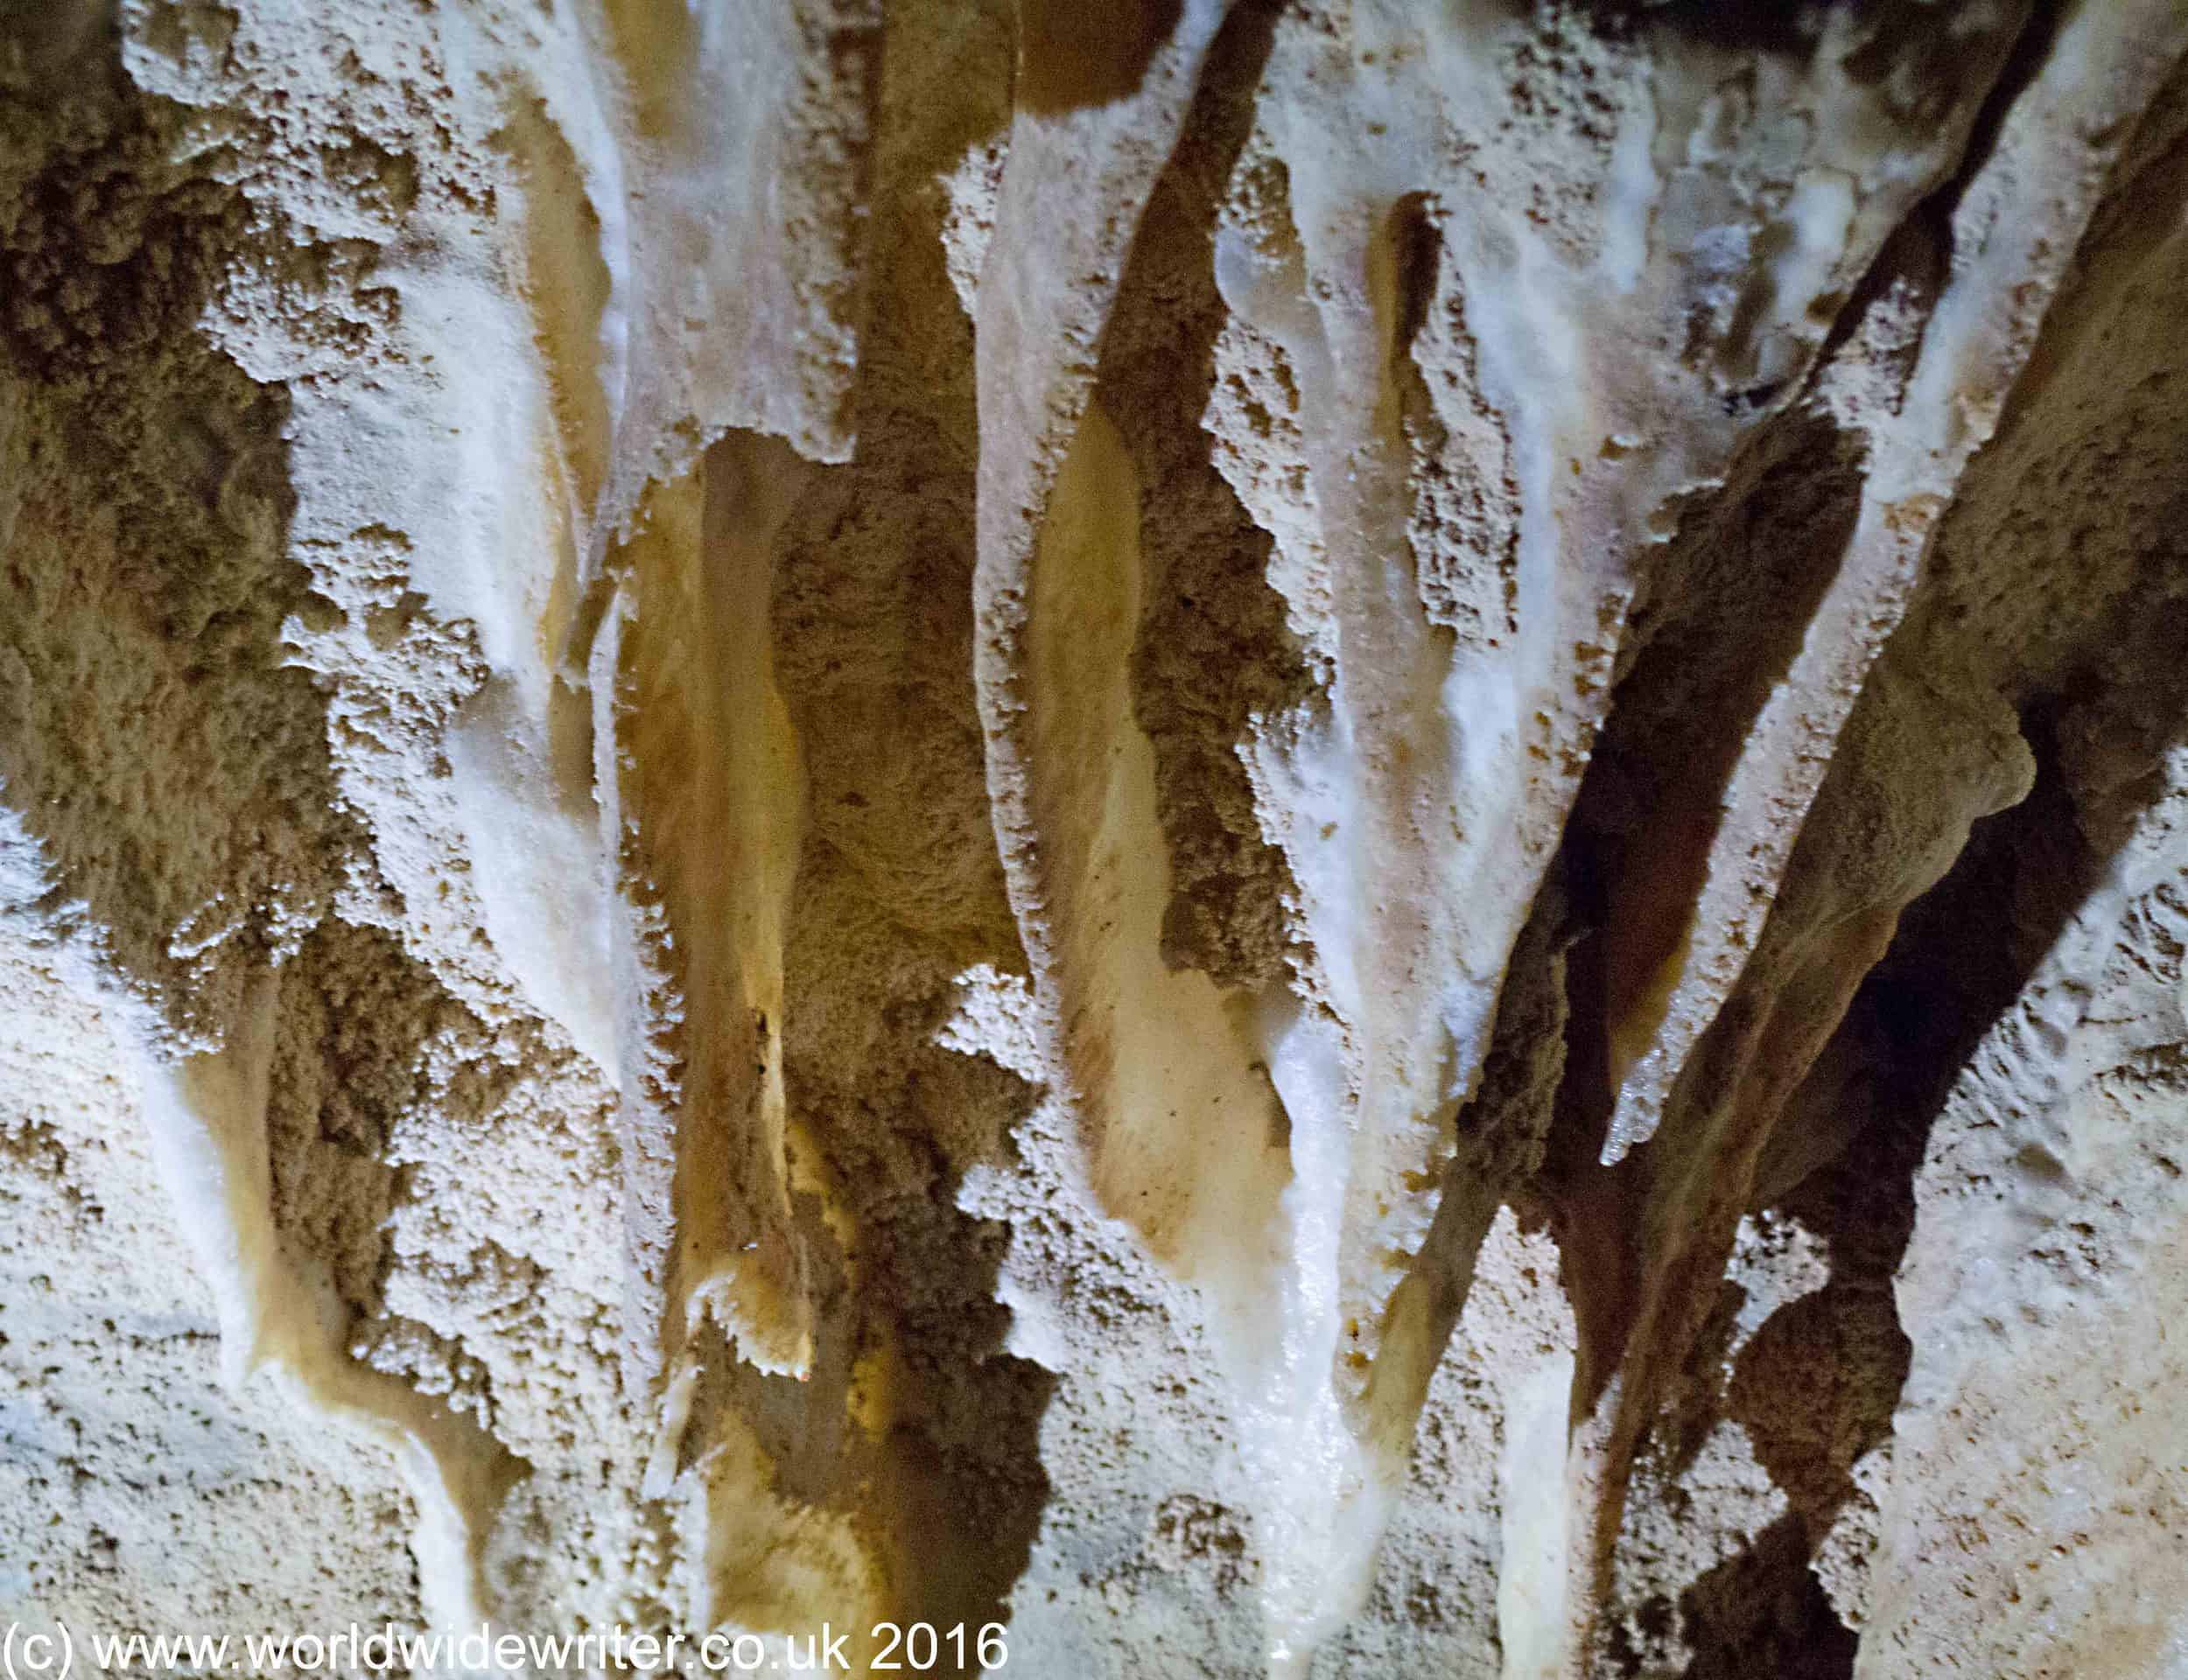 Coral and limestone formation